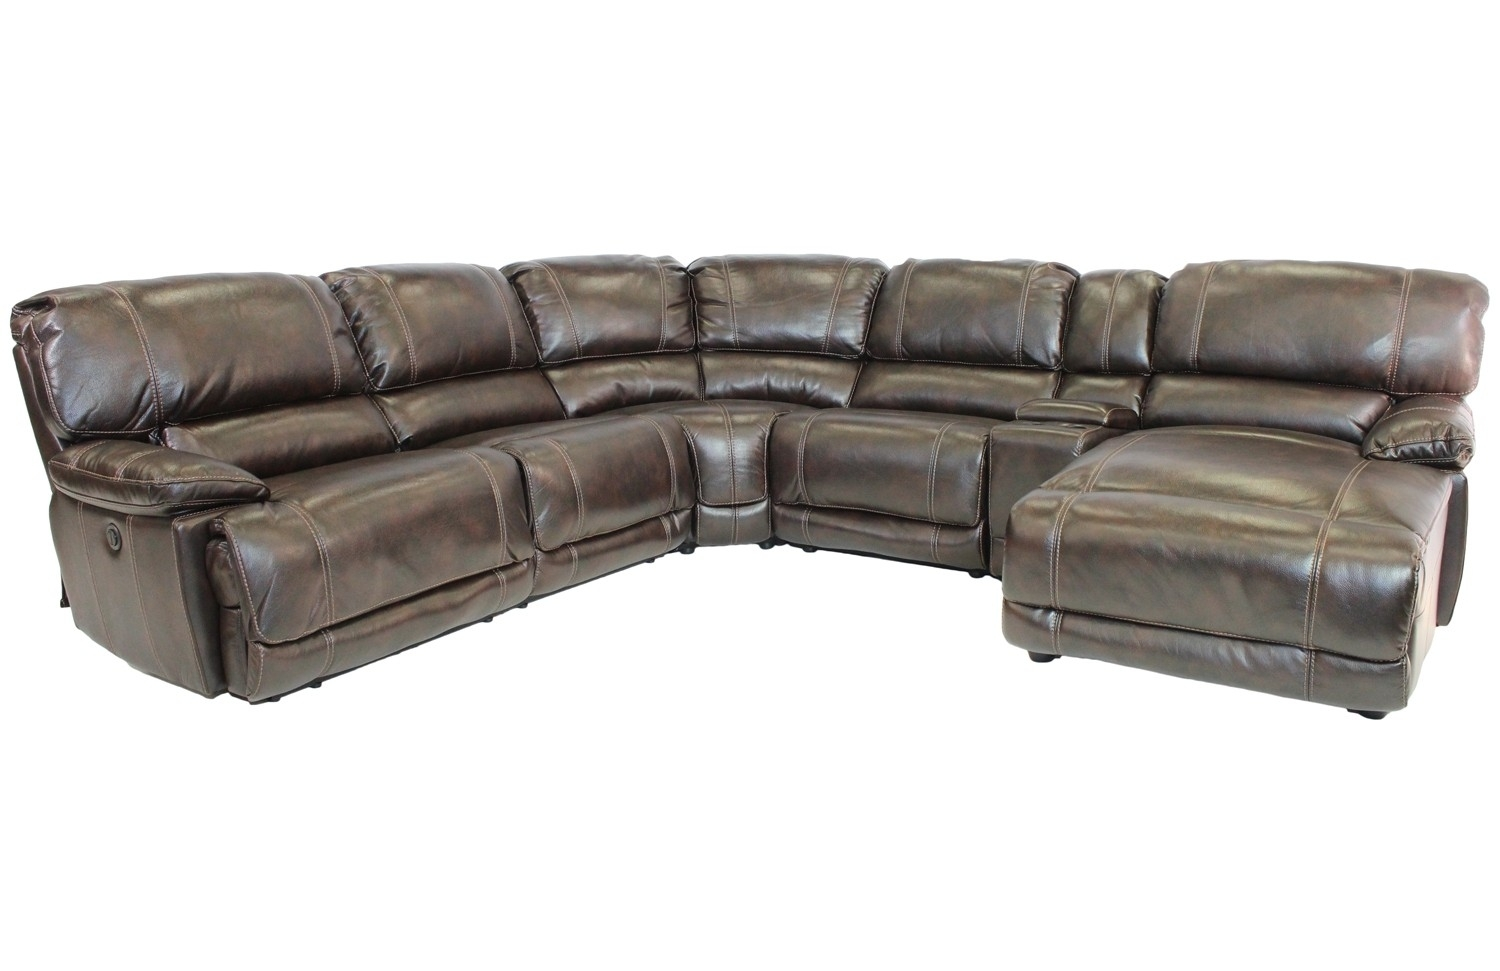 Sectional Sofas | Save Mor Online And In Store With Regard To Meyer 3 Piece Sectionals With Raf Chaise (View 21 of 25)